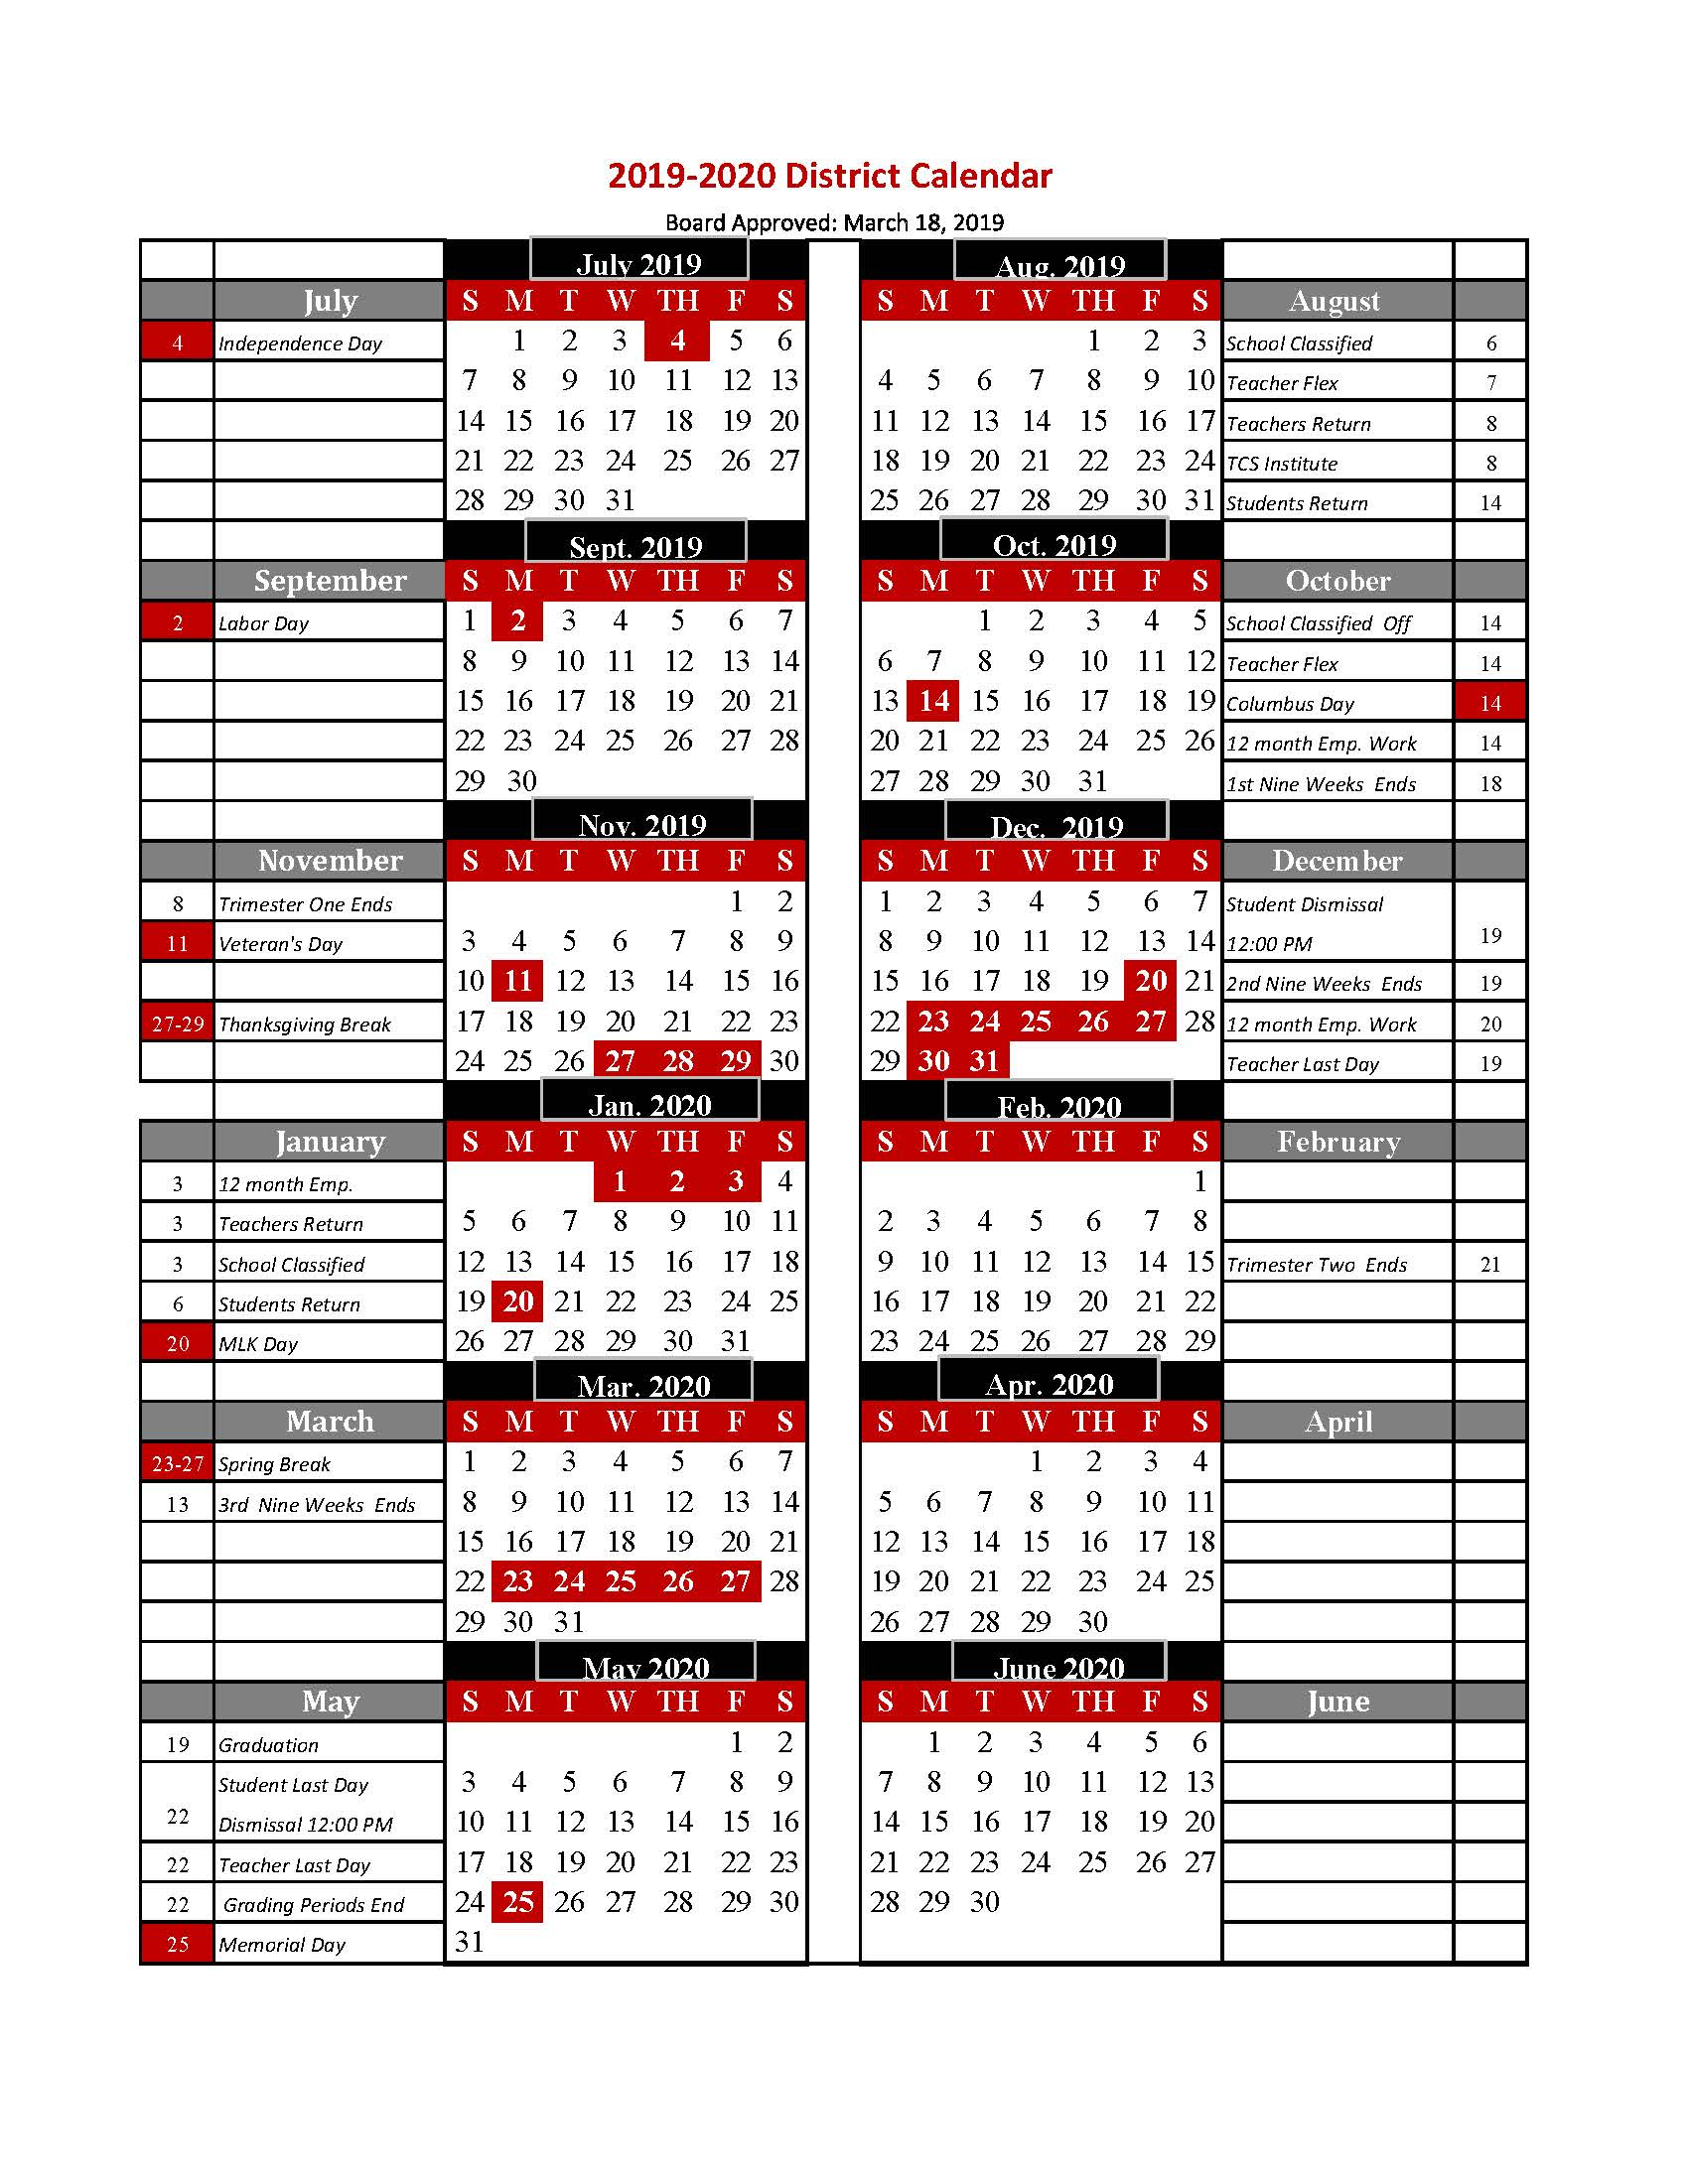 TCS calendar image with student holidays in red. Specific dates for TCS appear below in text format.